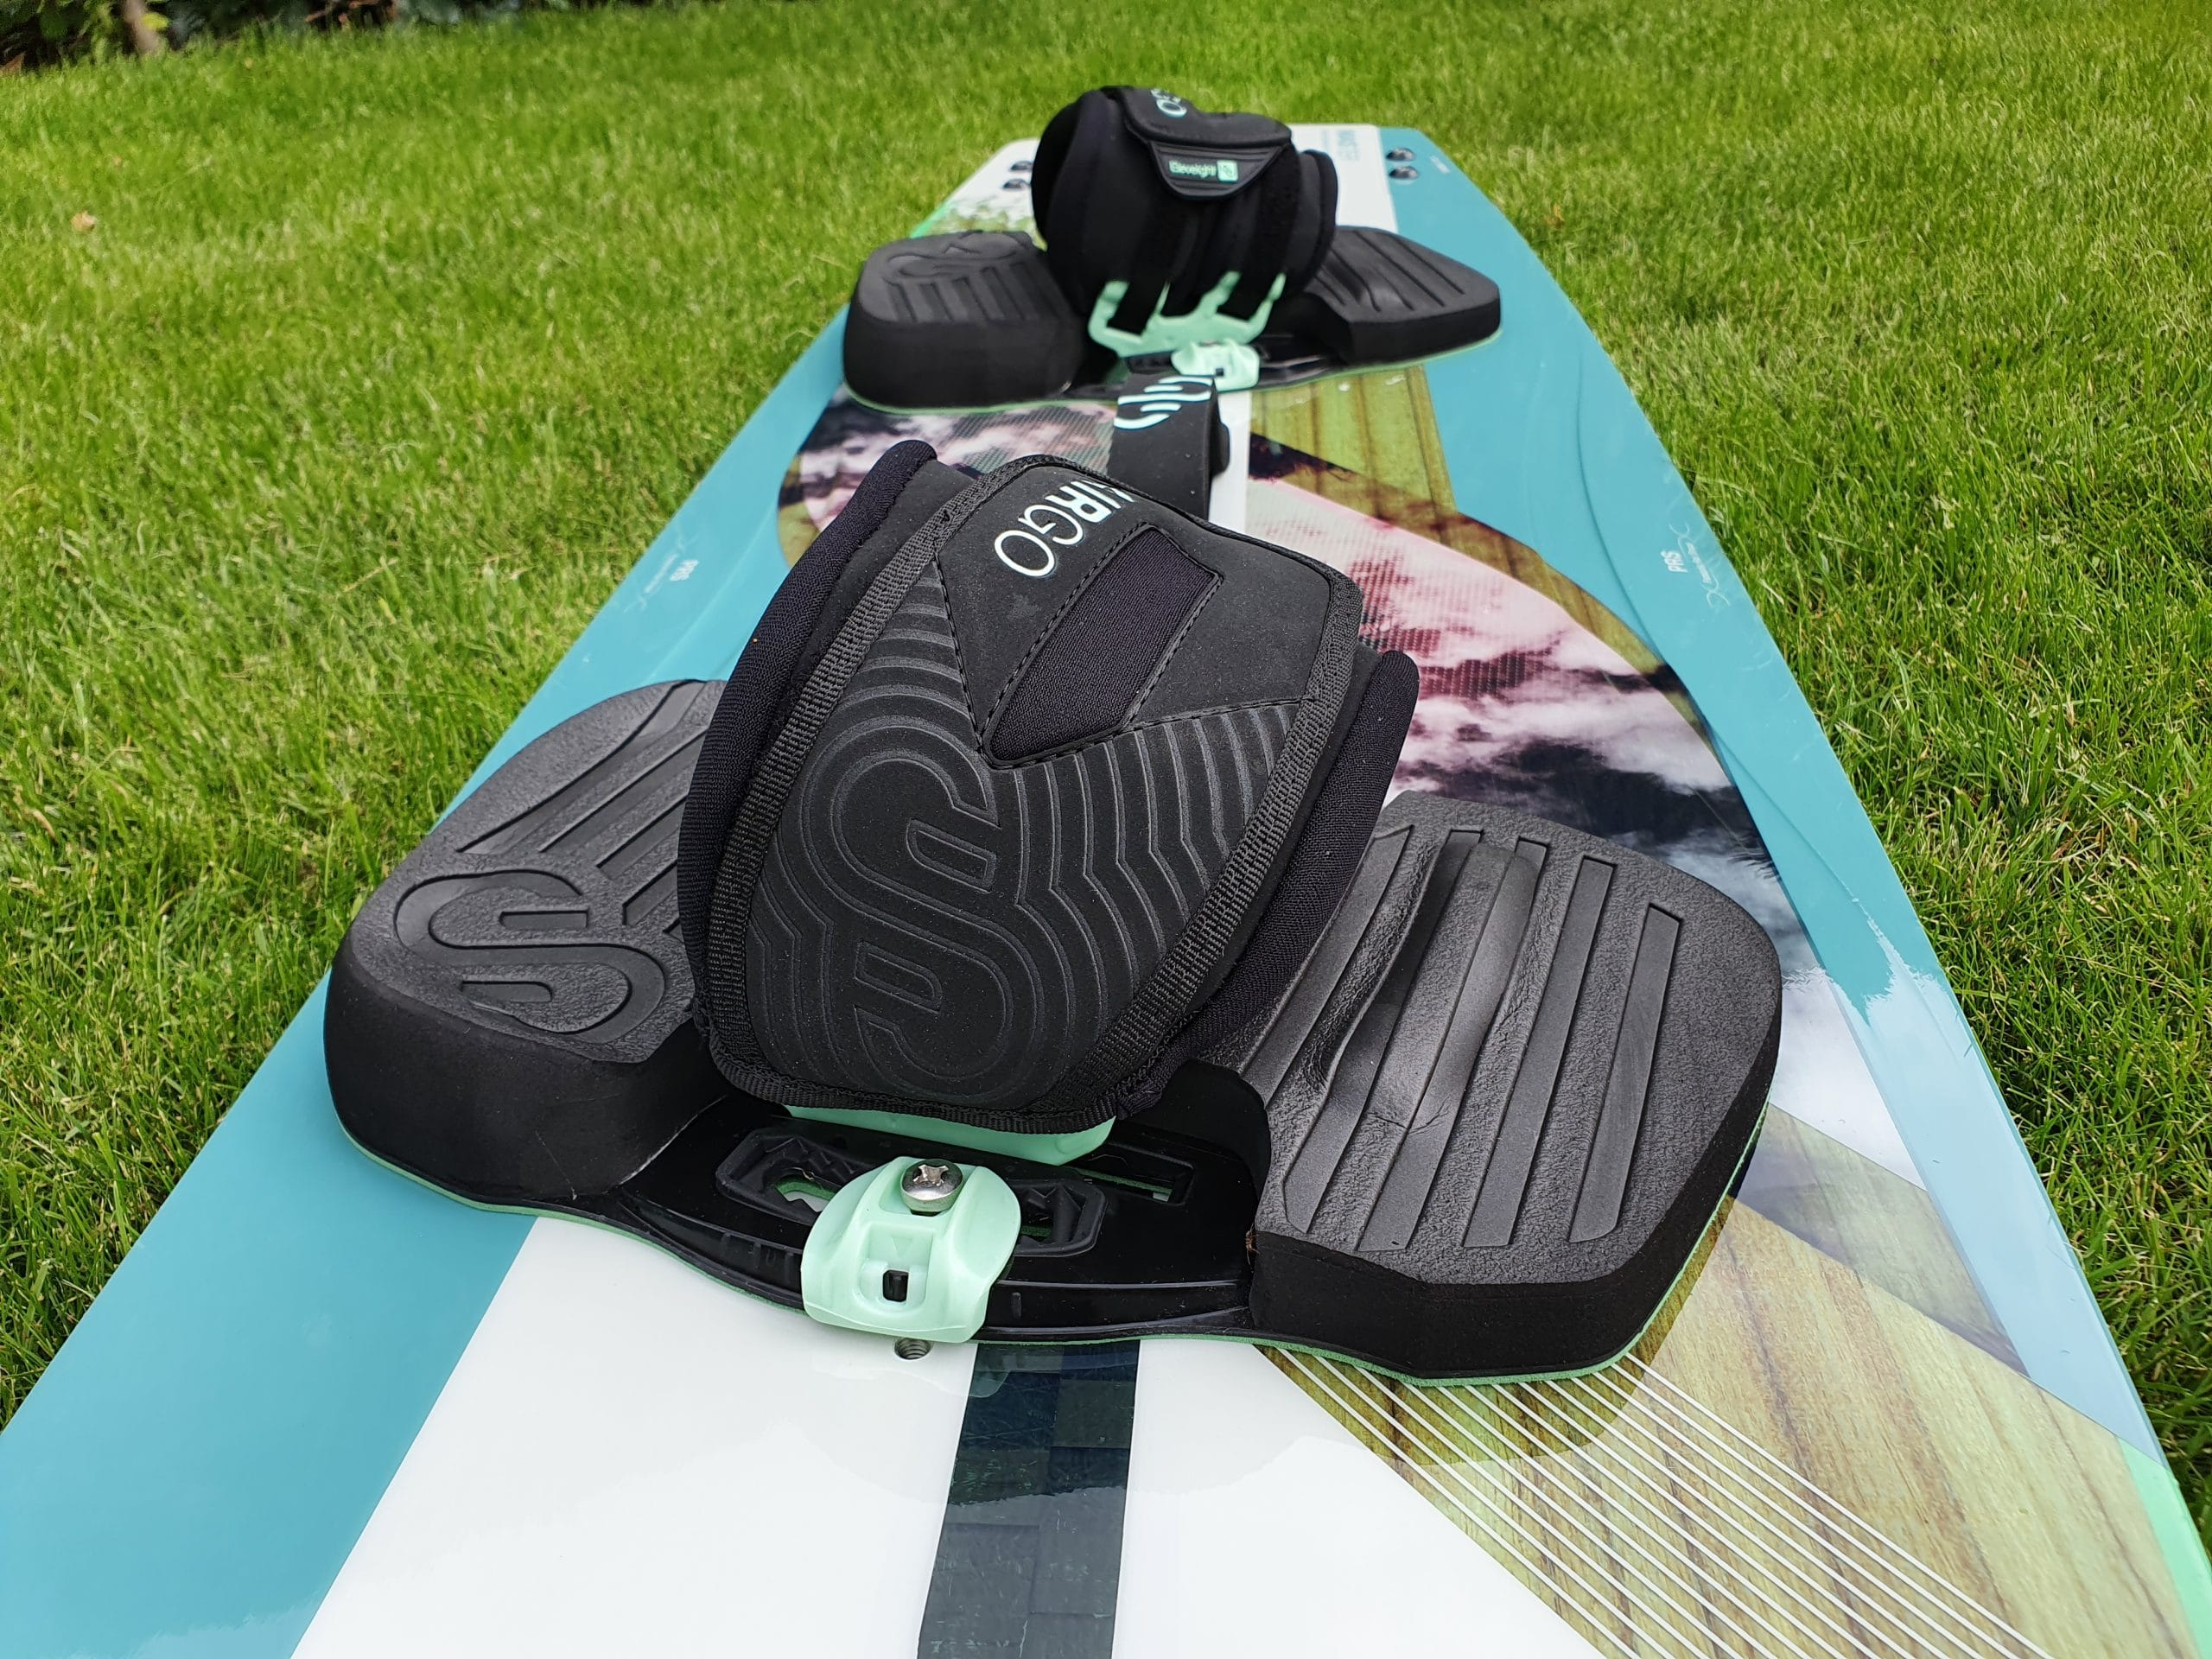 Eleveight master s board review